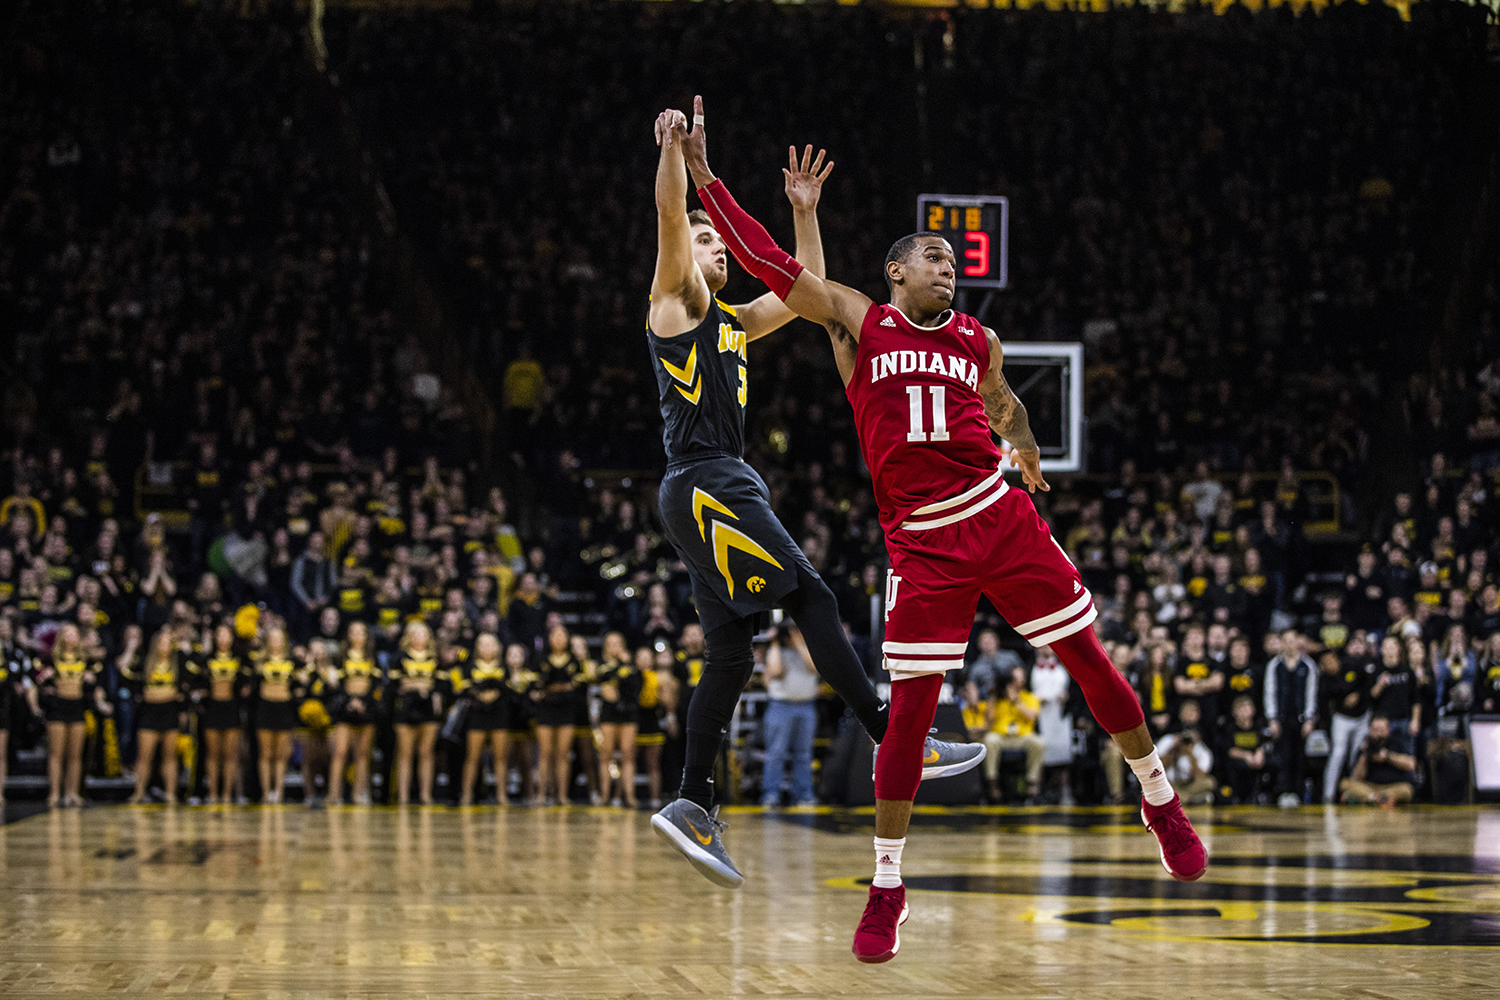 Iowa guard Jordan Bohannon shoots the ball past Indiana guard Devonte Green during men's basketball vs. Indiana at Carver-Hawkeye Arena on Friday, February 22, 2019. The Hawkeyes defeated the Hoosiers 76-70. (Katina Zentz/The Daily Iowan)